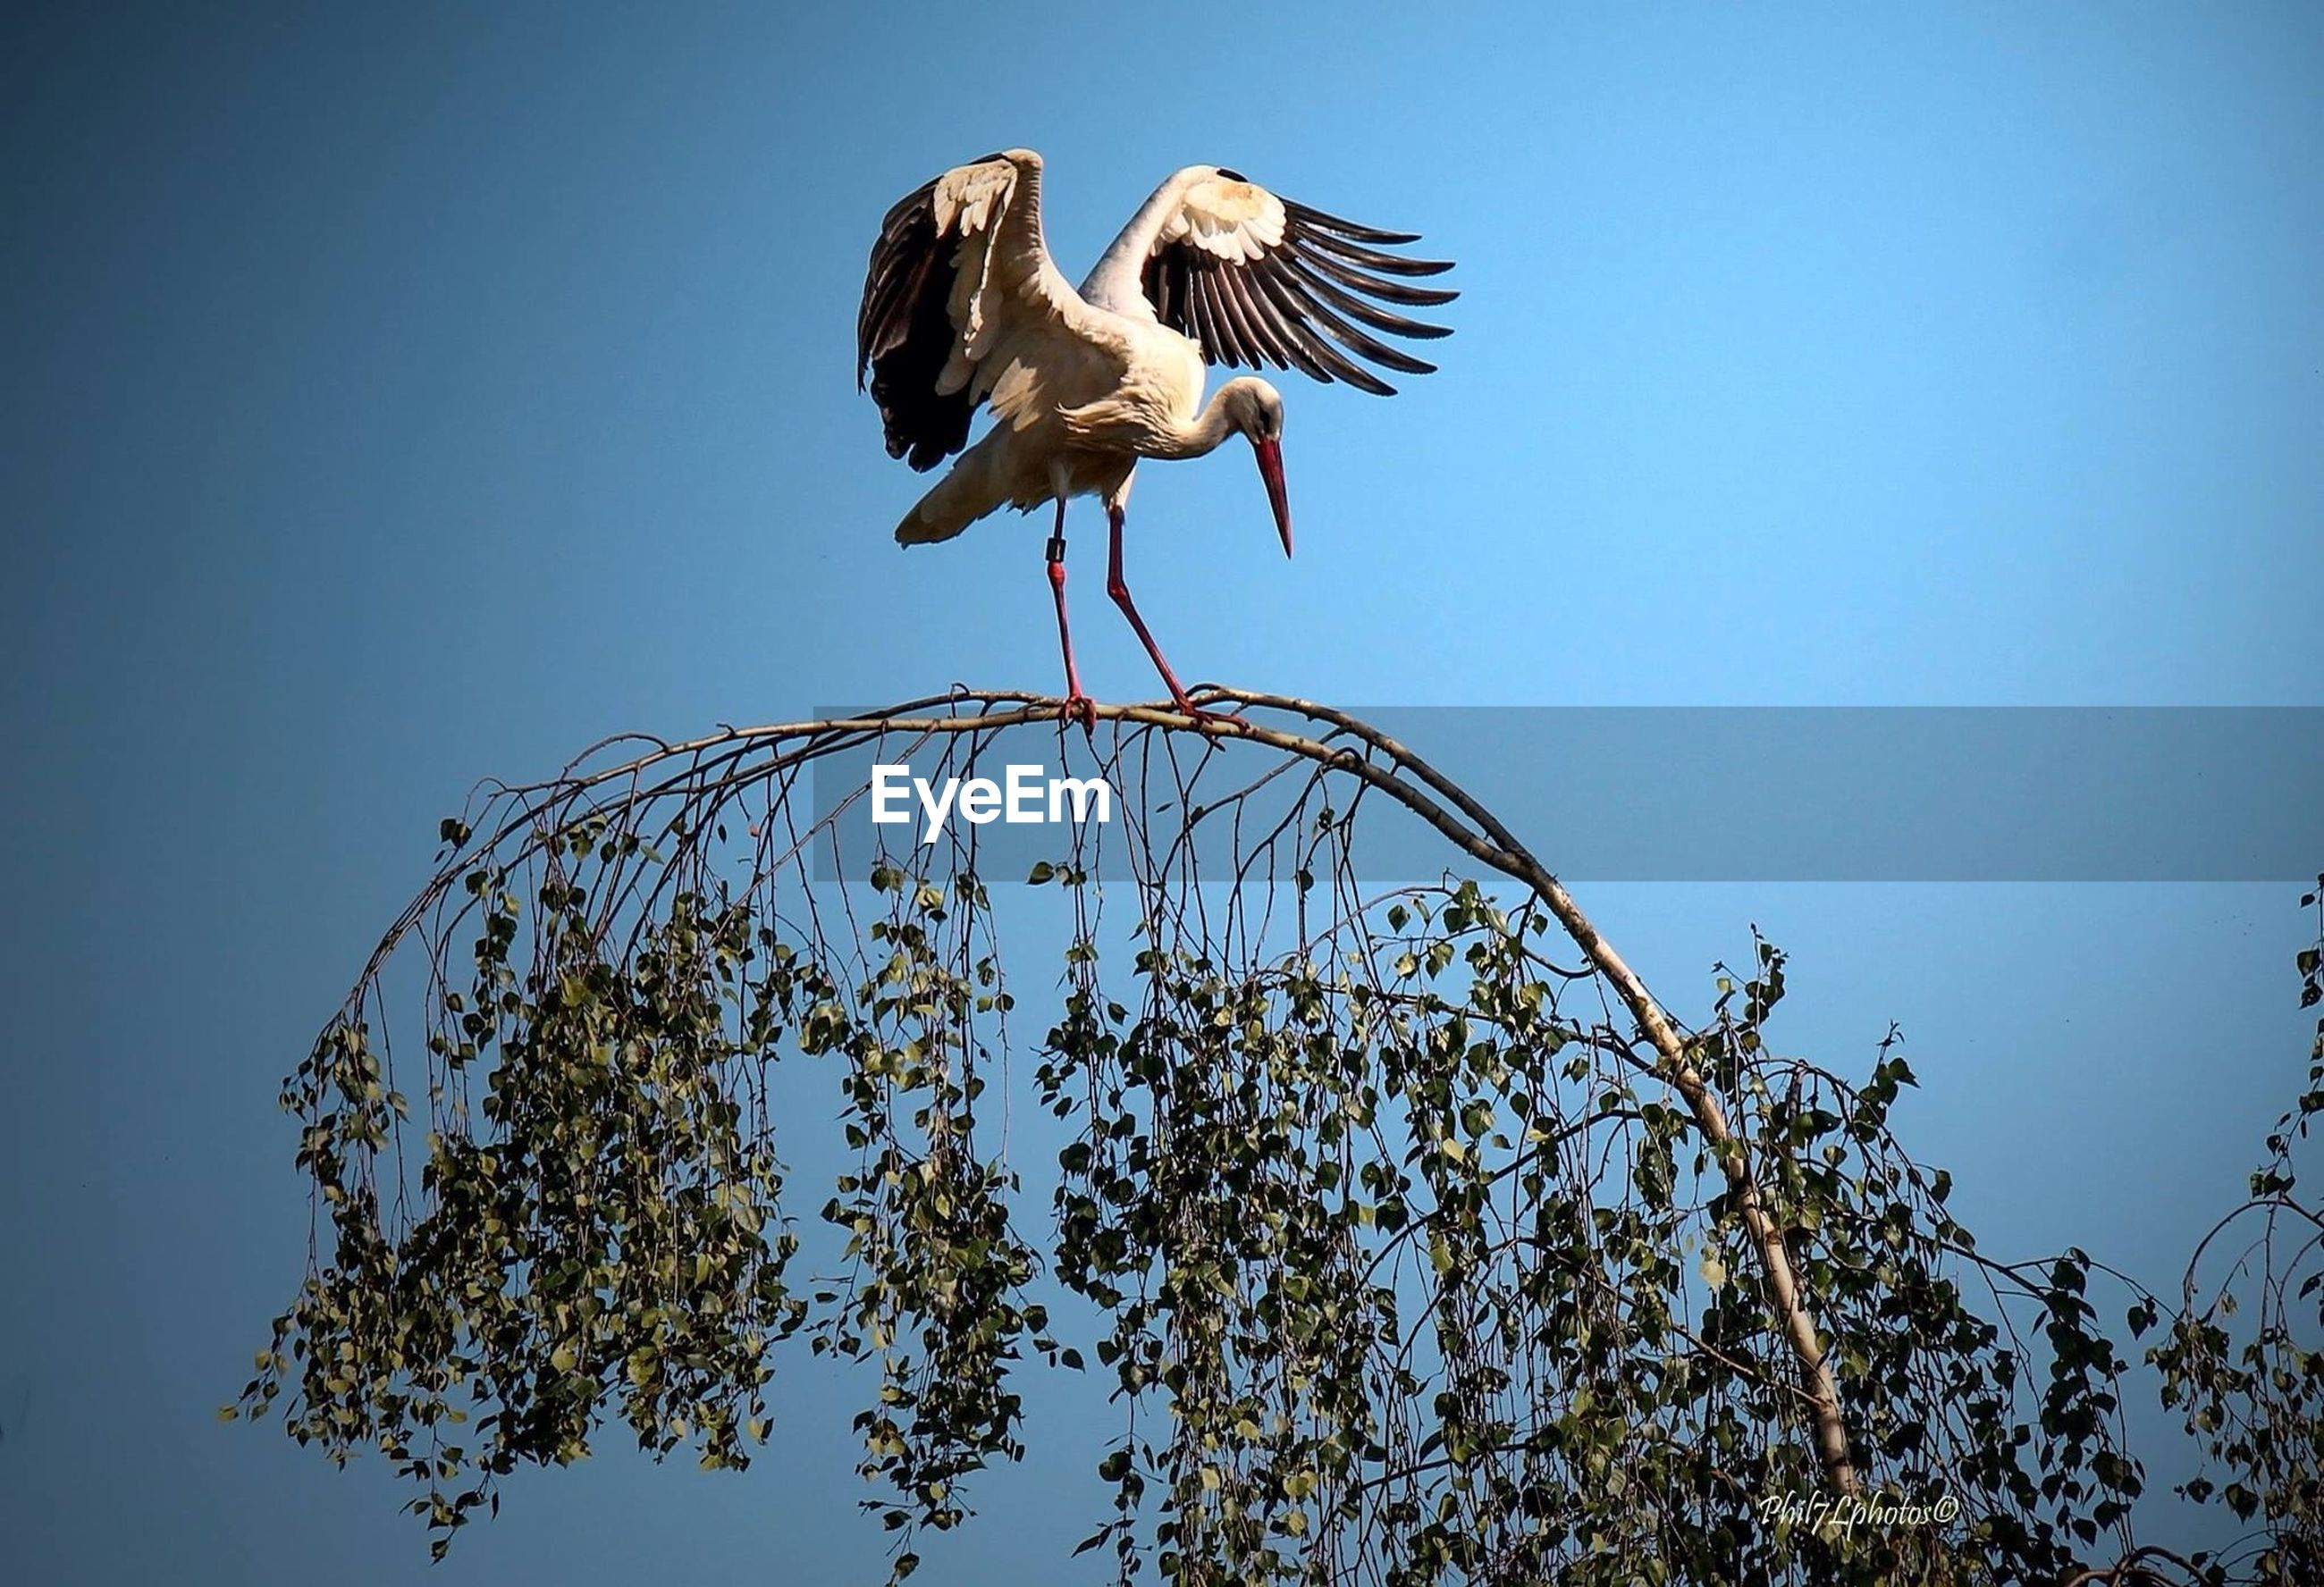 bird, animal themes, animals in the wild, wildlife, low angle view, clear sky, spread wings, flying, perching, blue, one animal, full length, two animals, mid-air, nature, branch, copy space, day, zoology, tree